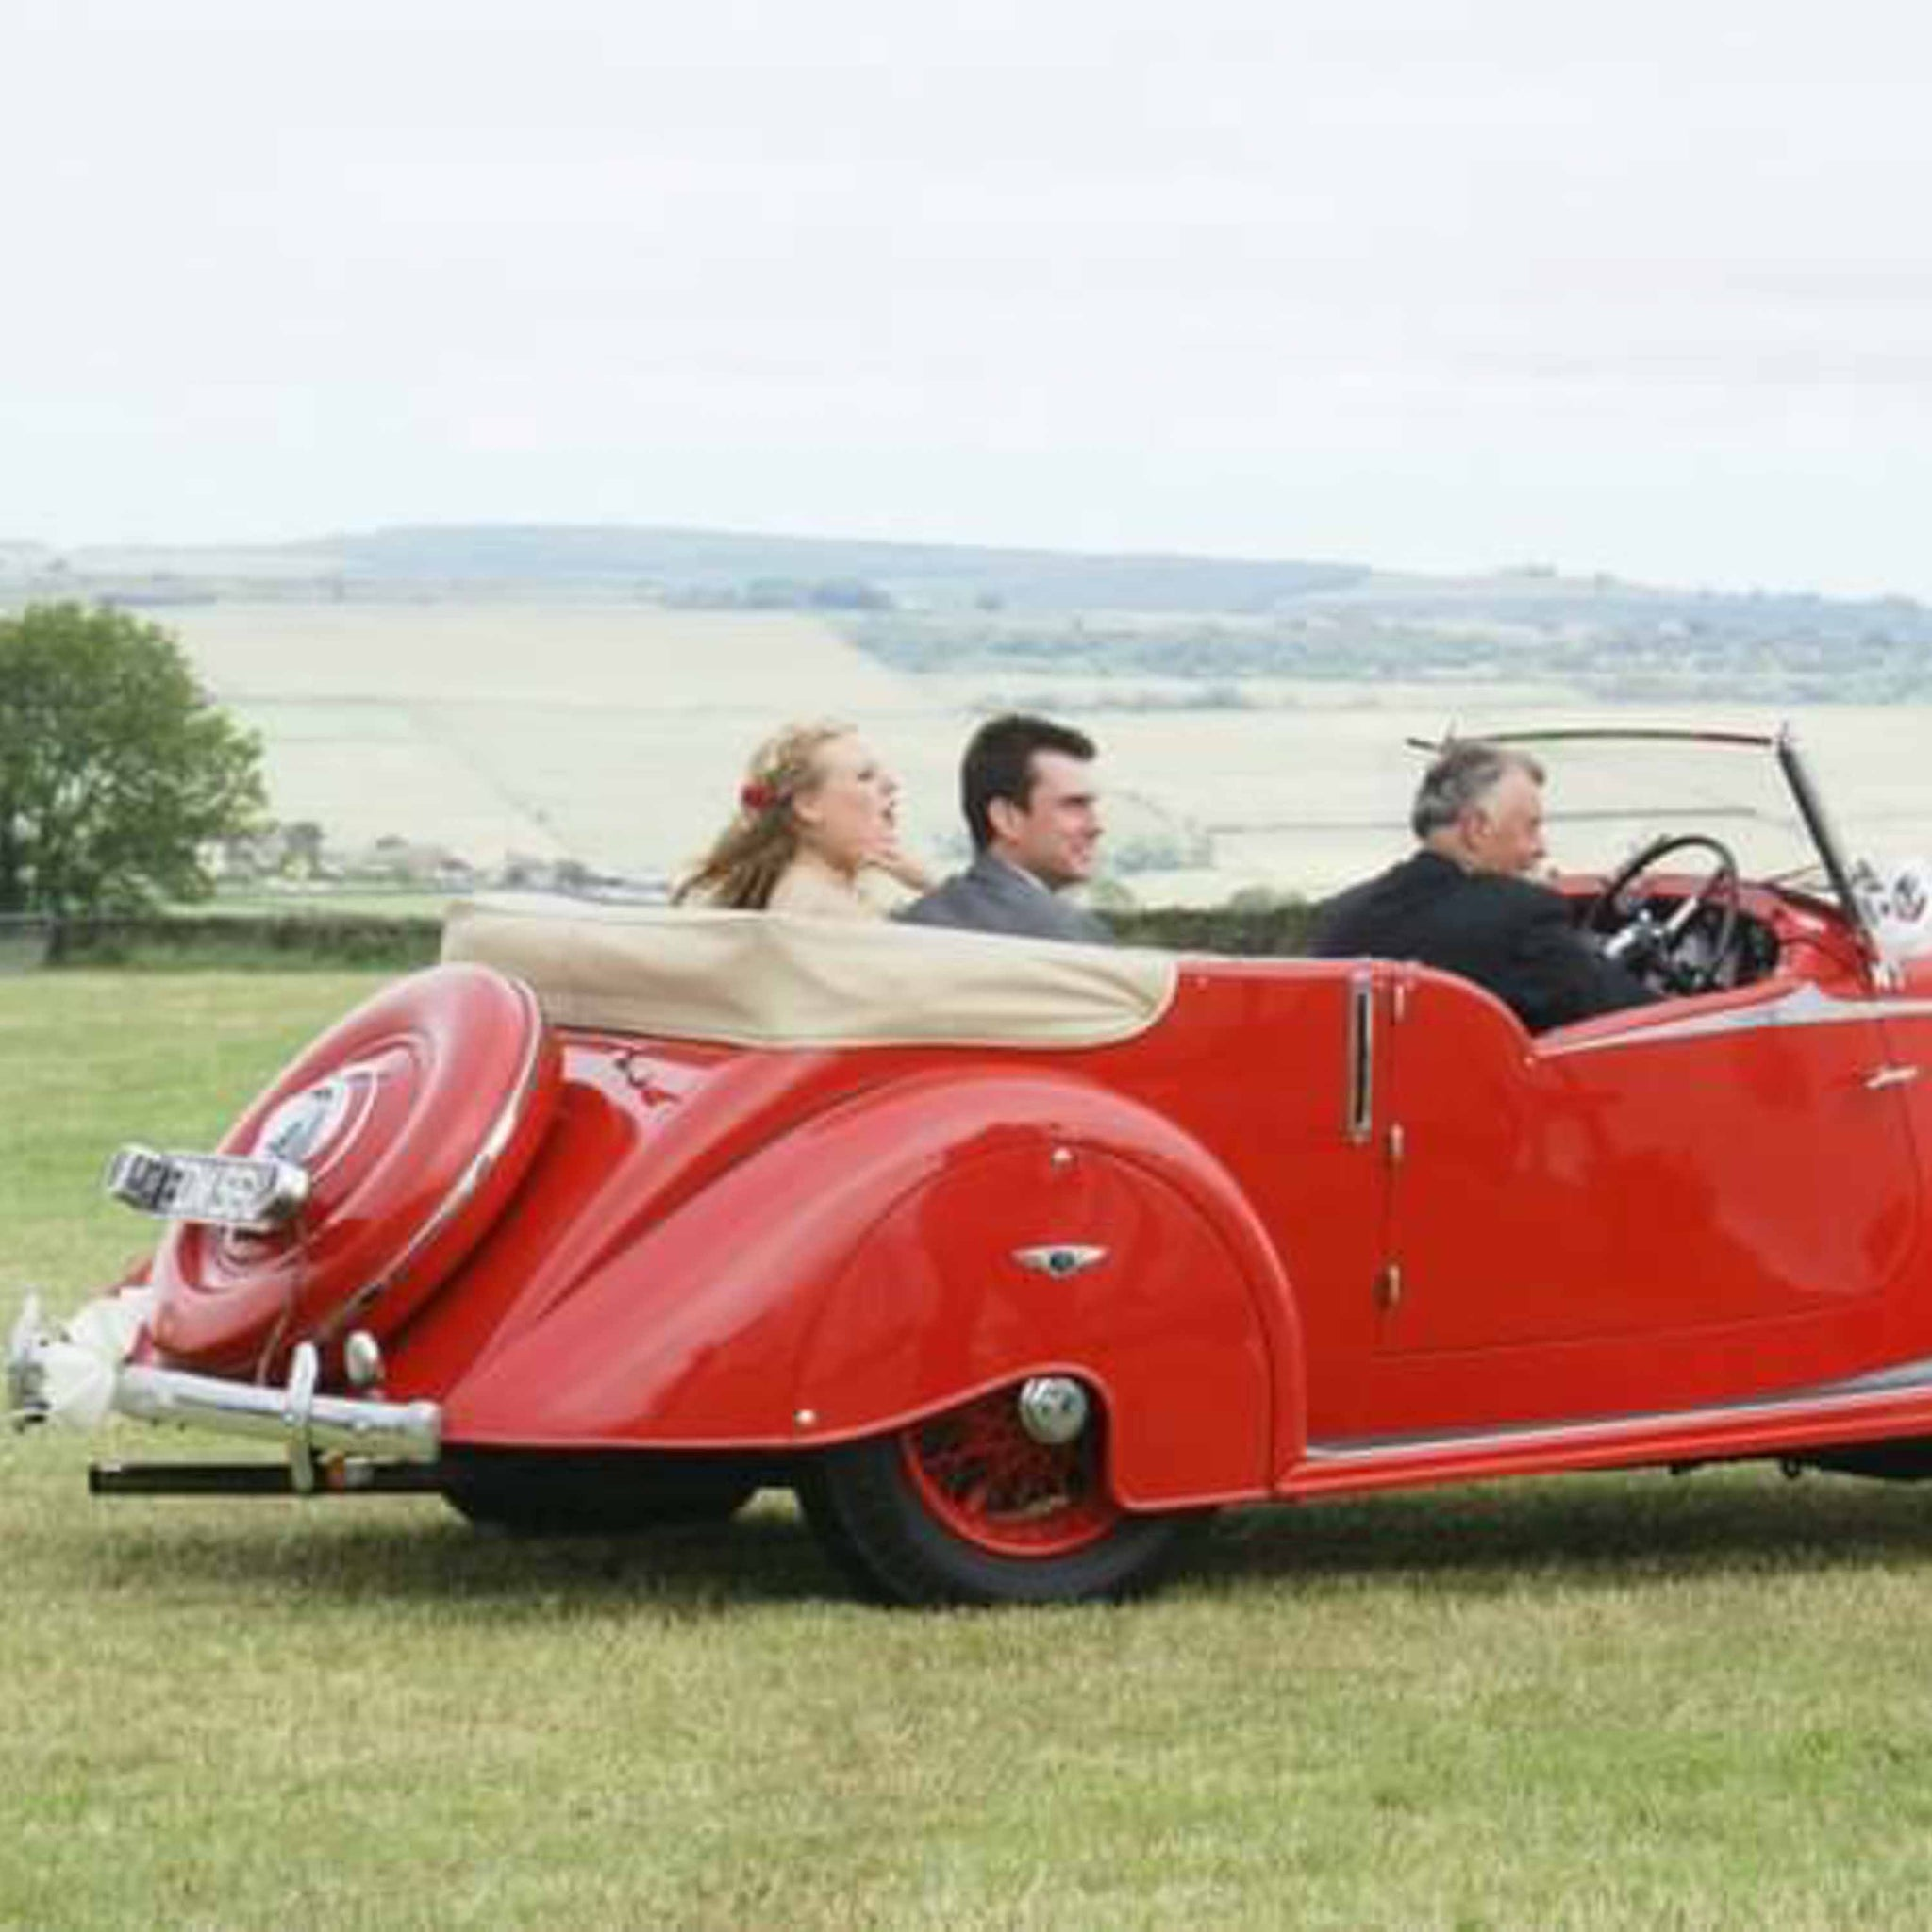 red wedding car with passangers in field